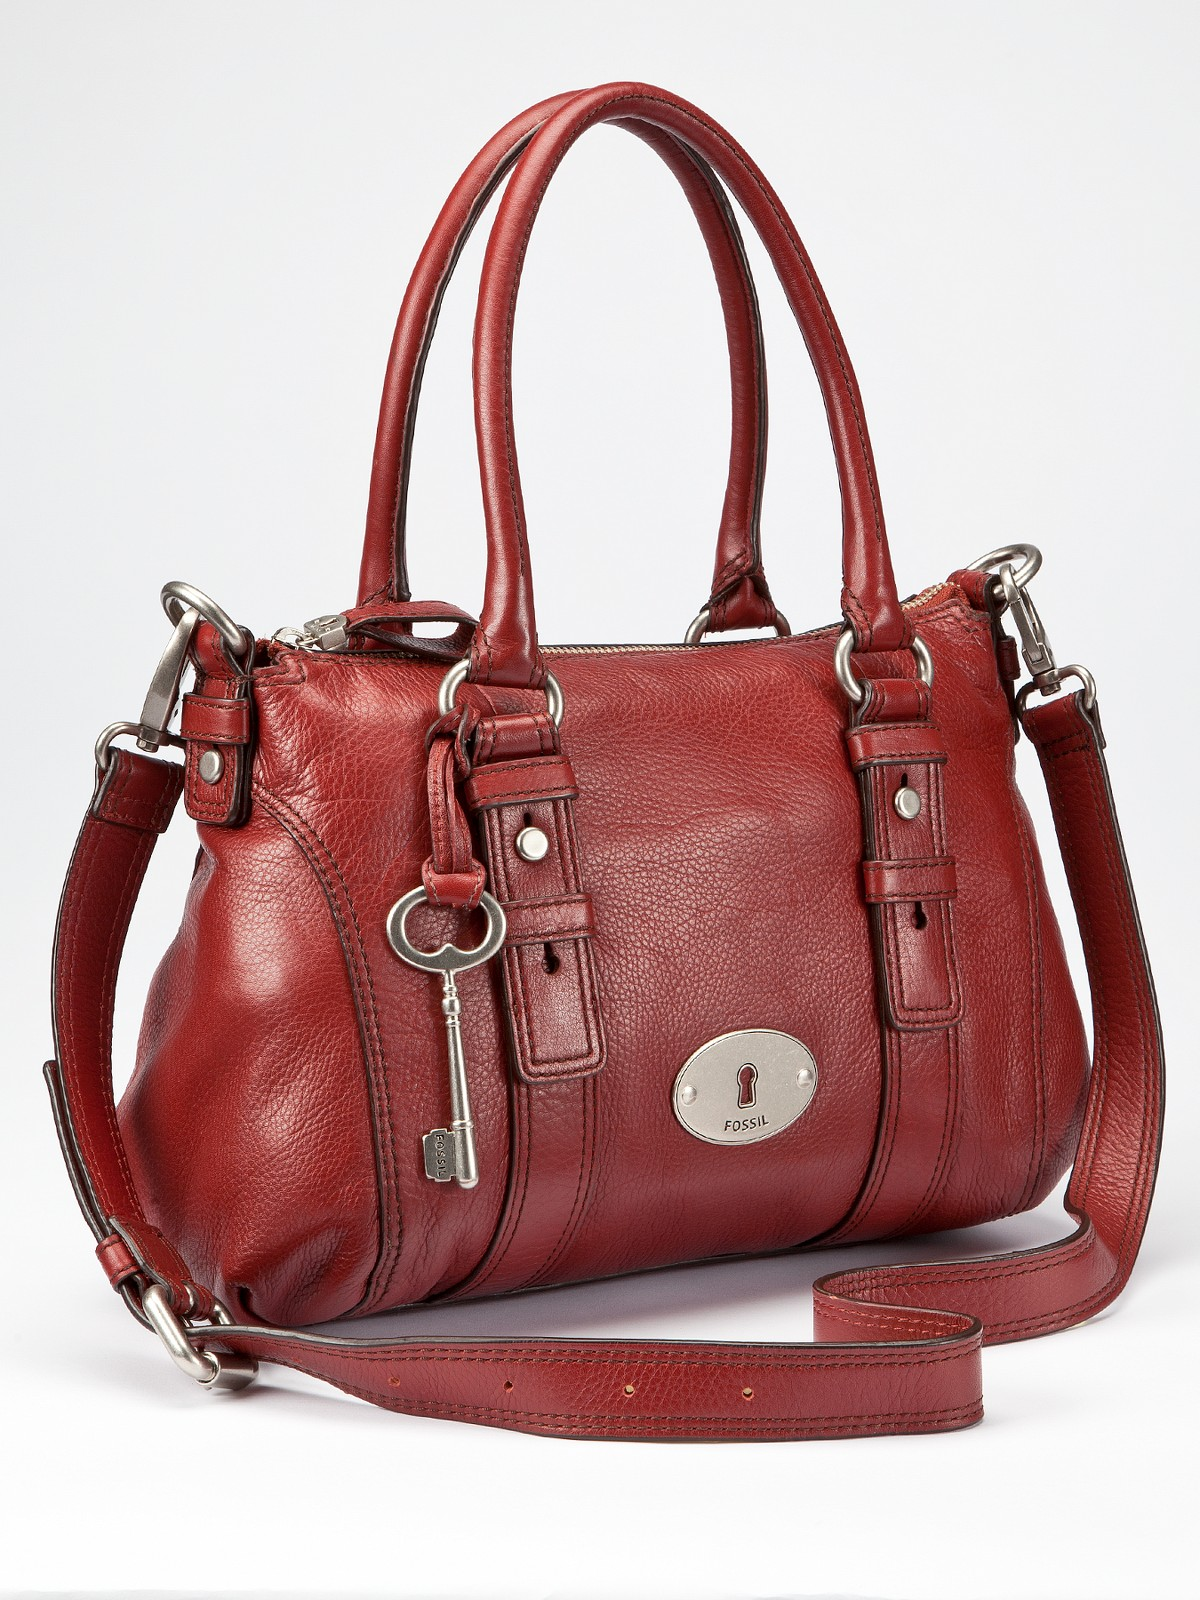 Fossil Fossil Maddox Leather Satchel Bag In Brown Red Lyst